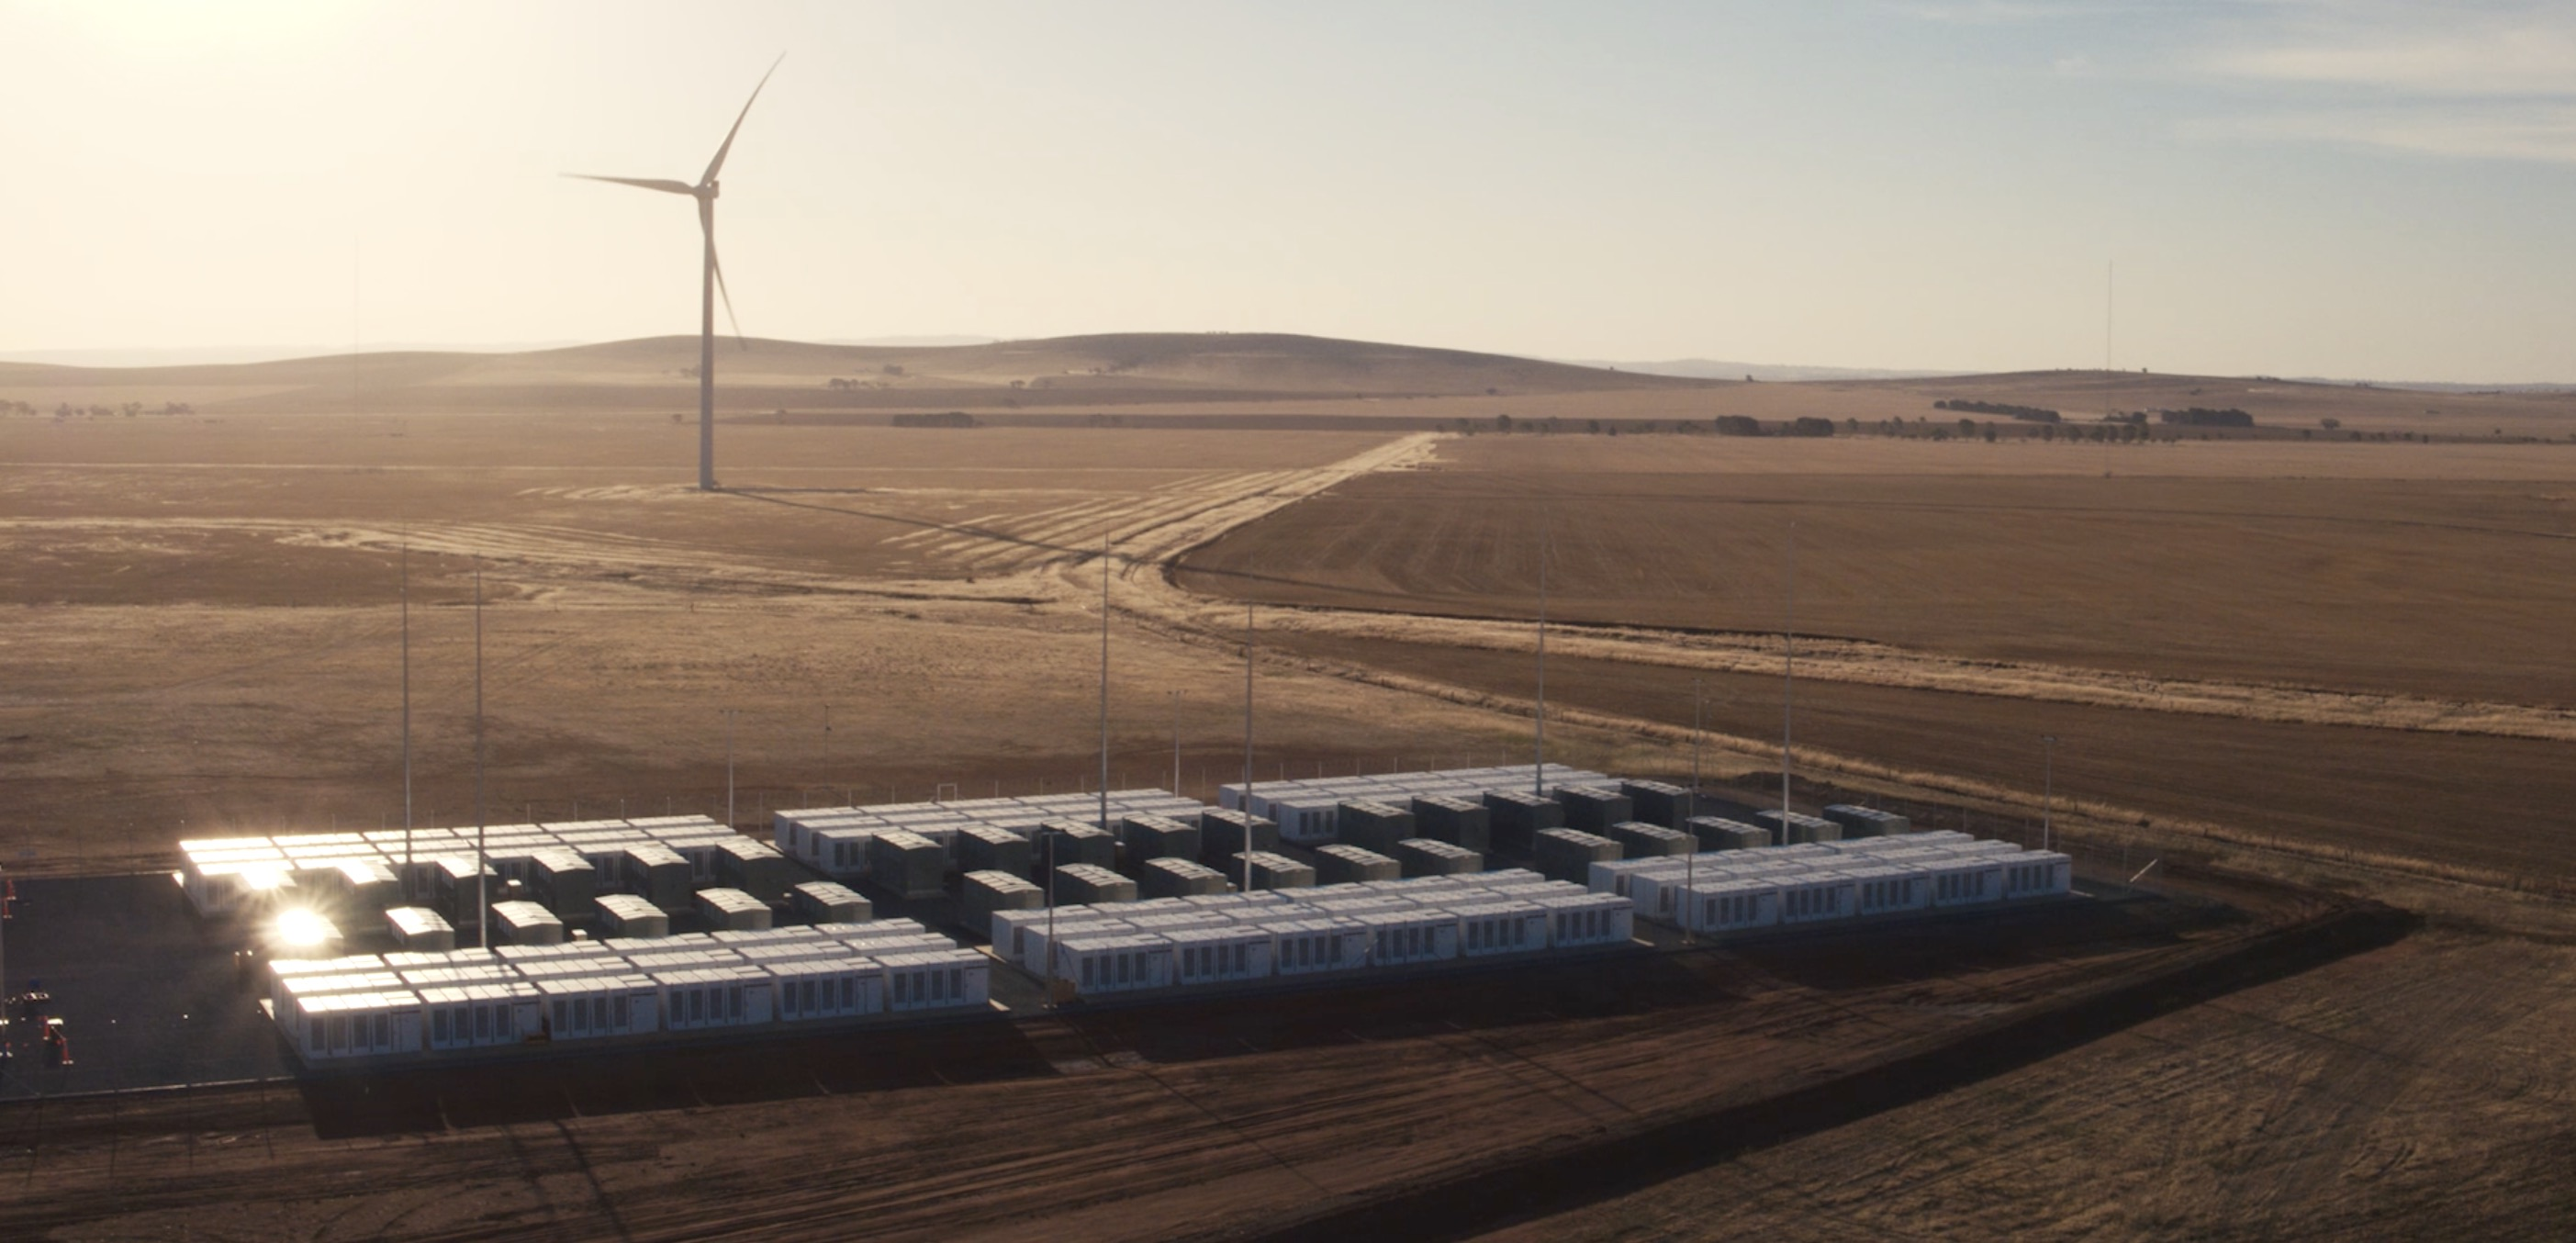 Tesla S Massive Powerpack Battery In Australia Cost 66 Million And Already Made Up To 17 Million Electrek